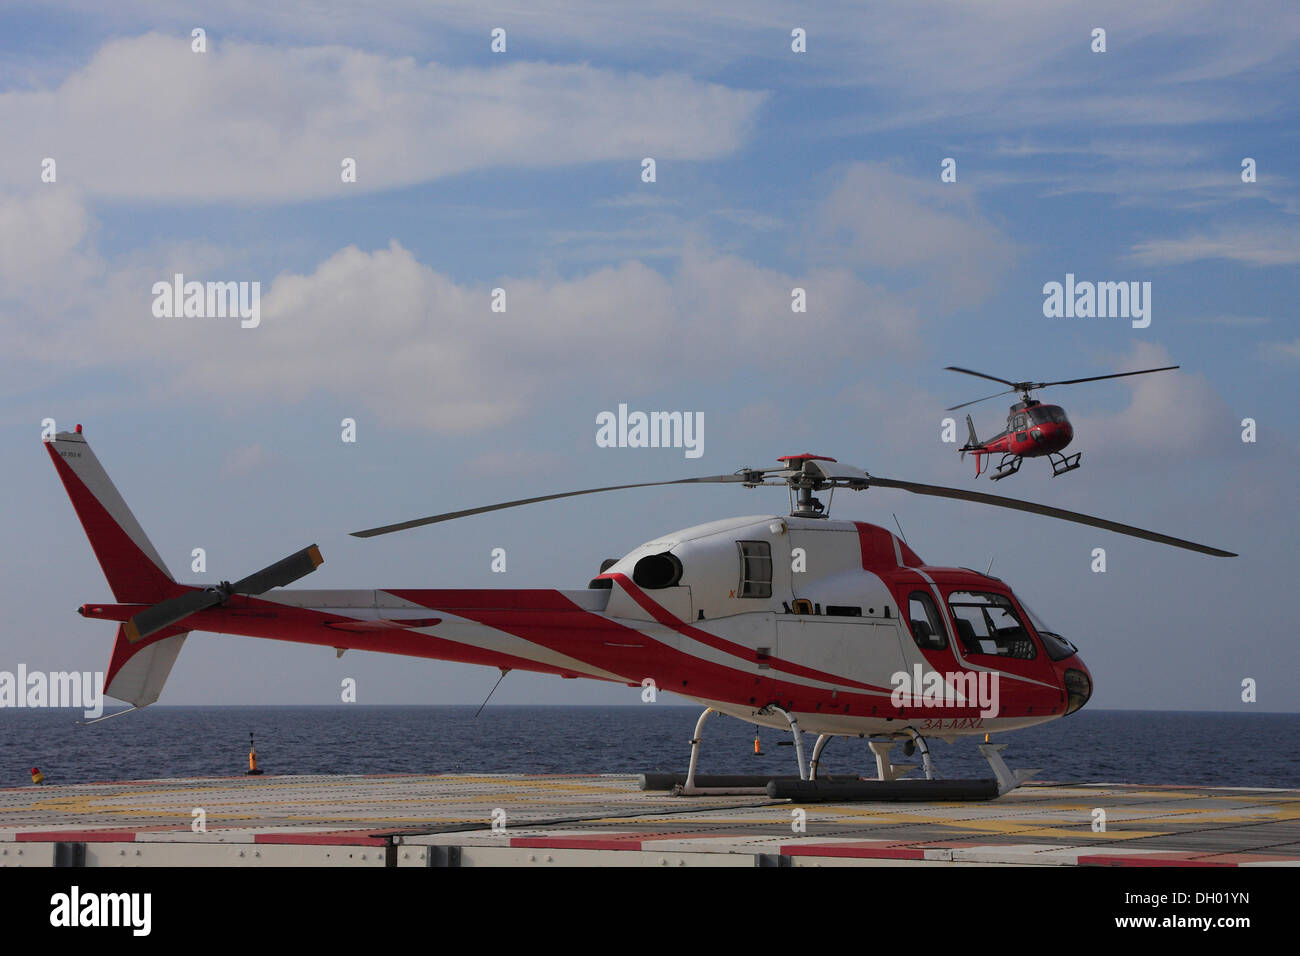 Landing and parked helicopters on the Fontvieille heliport, Monaco, Cote d'Azur, Mediterranean, Europe - Stock Image